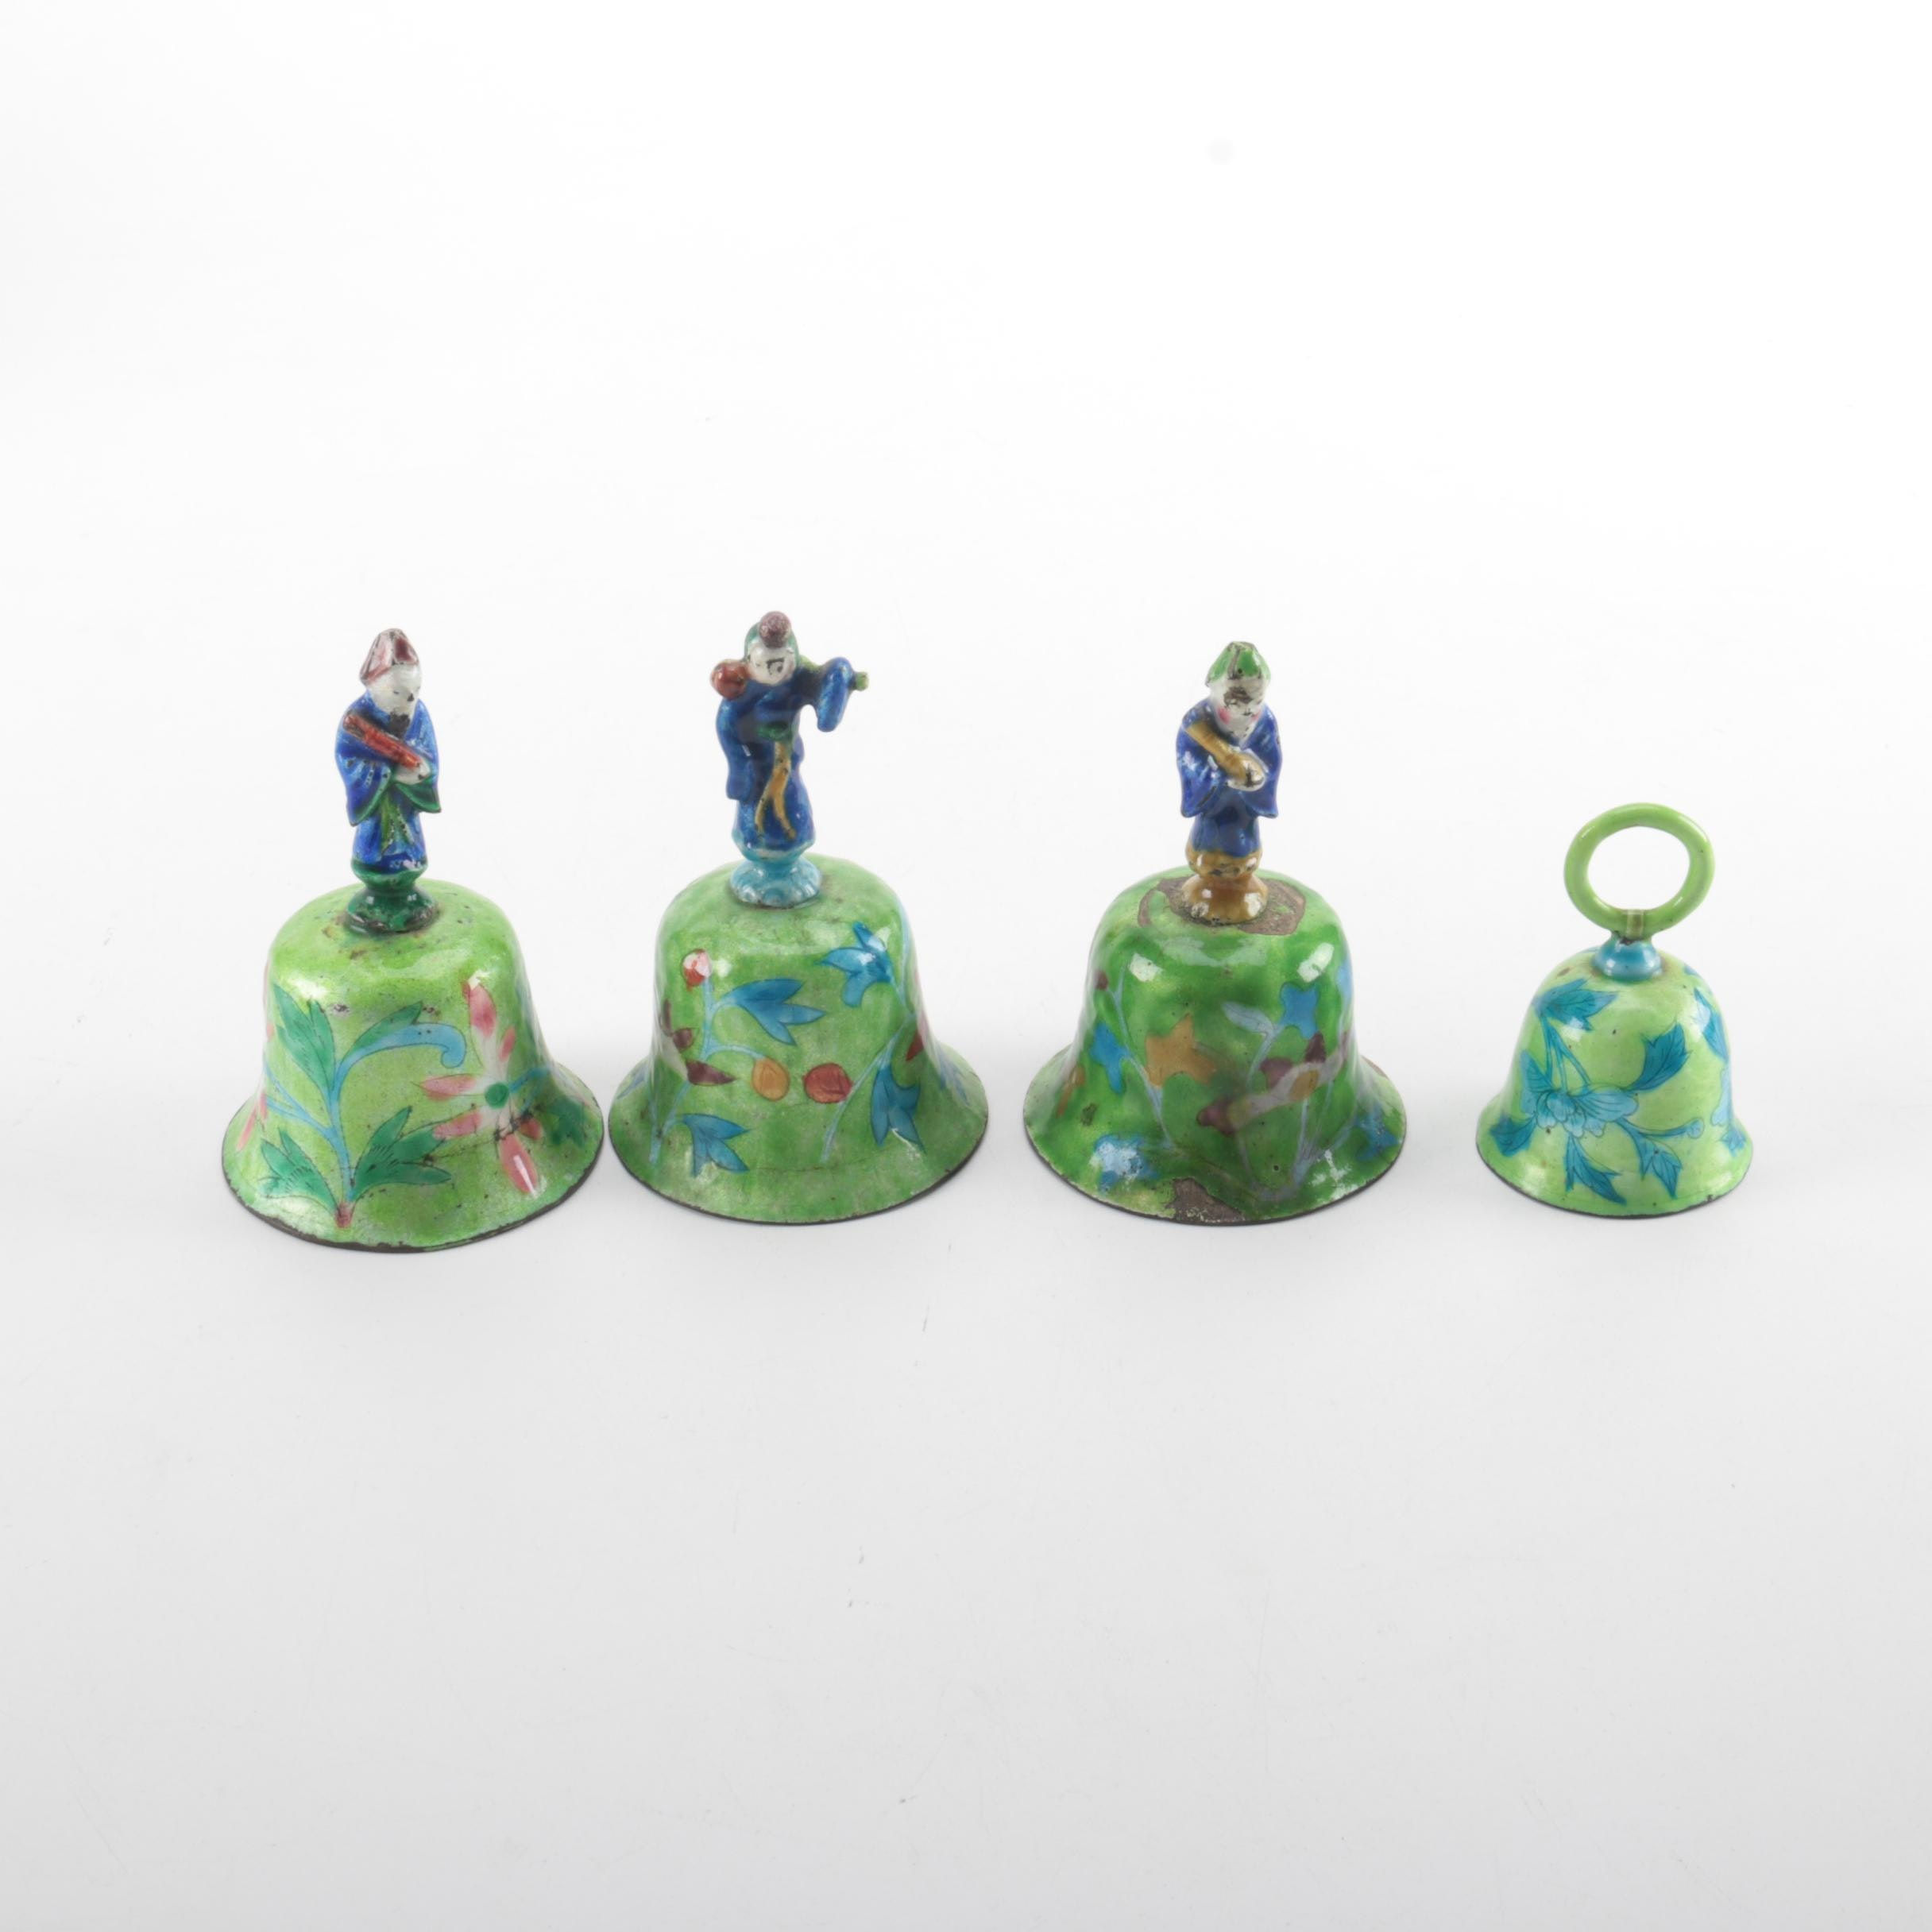 Chinese Decorative Enameled Metal Bells